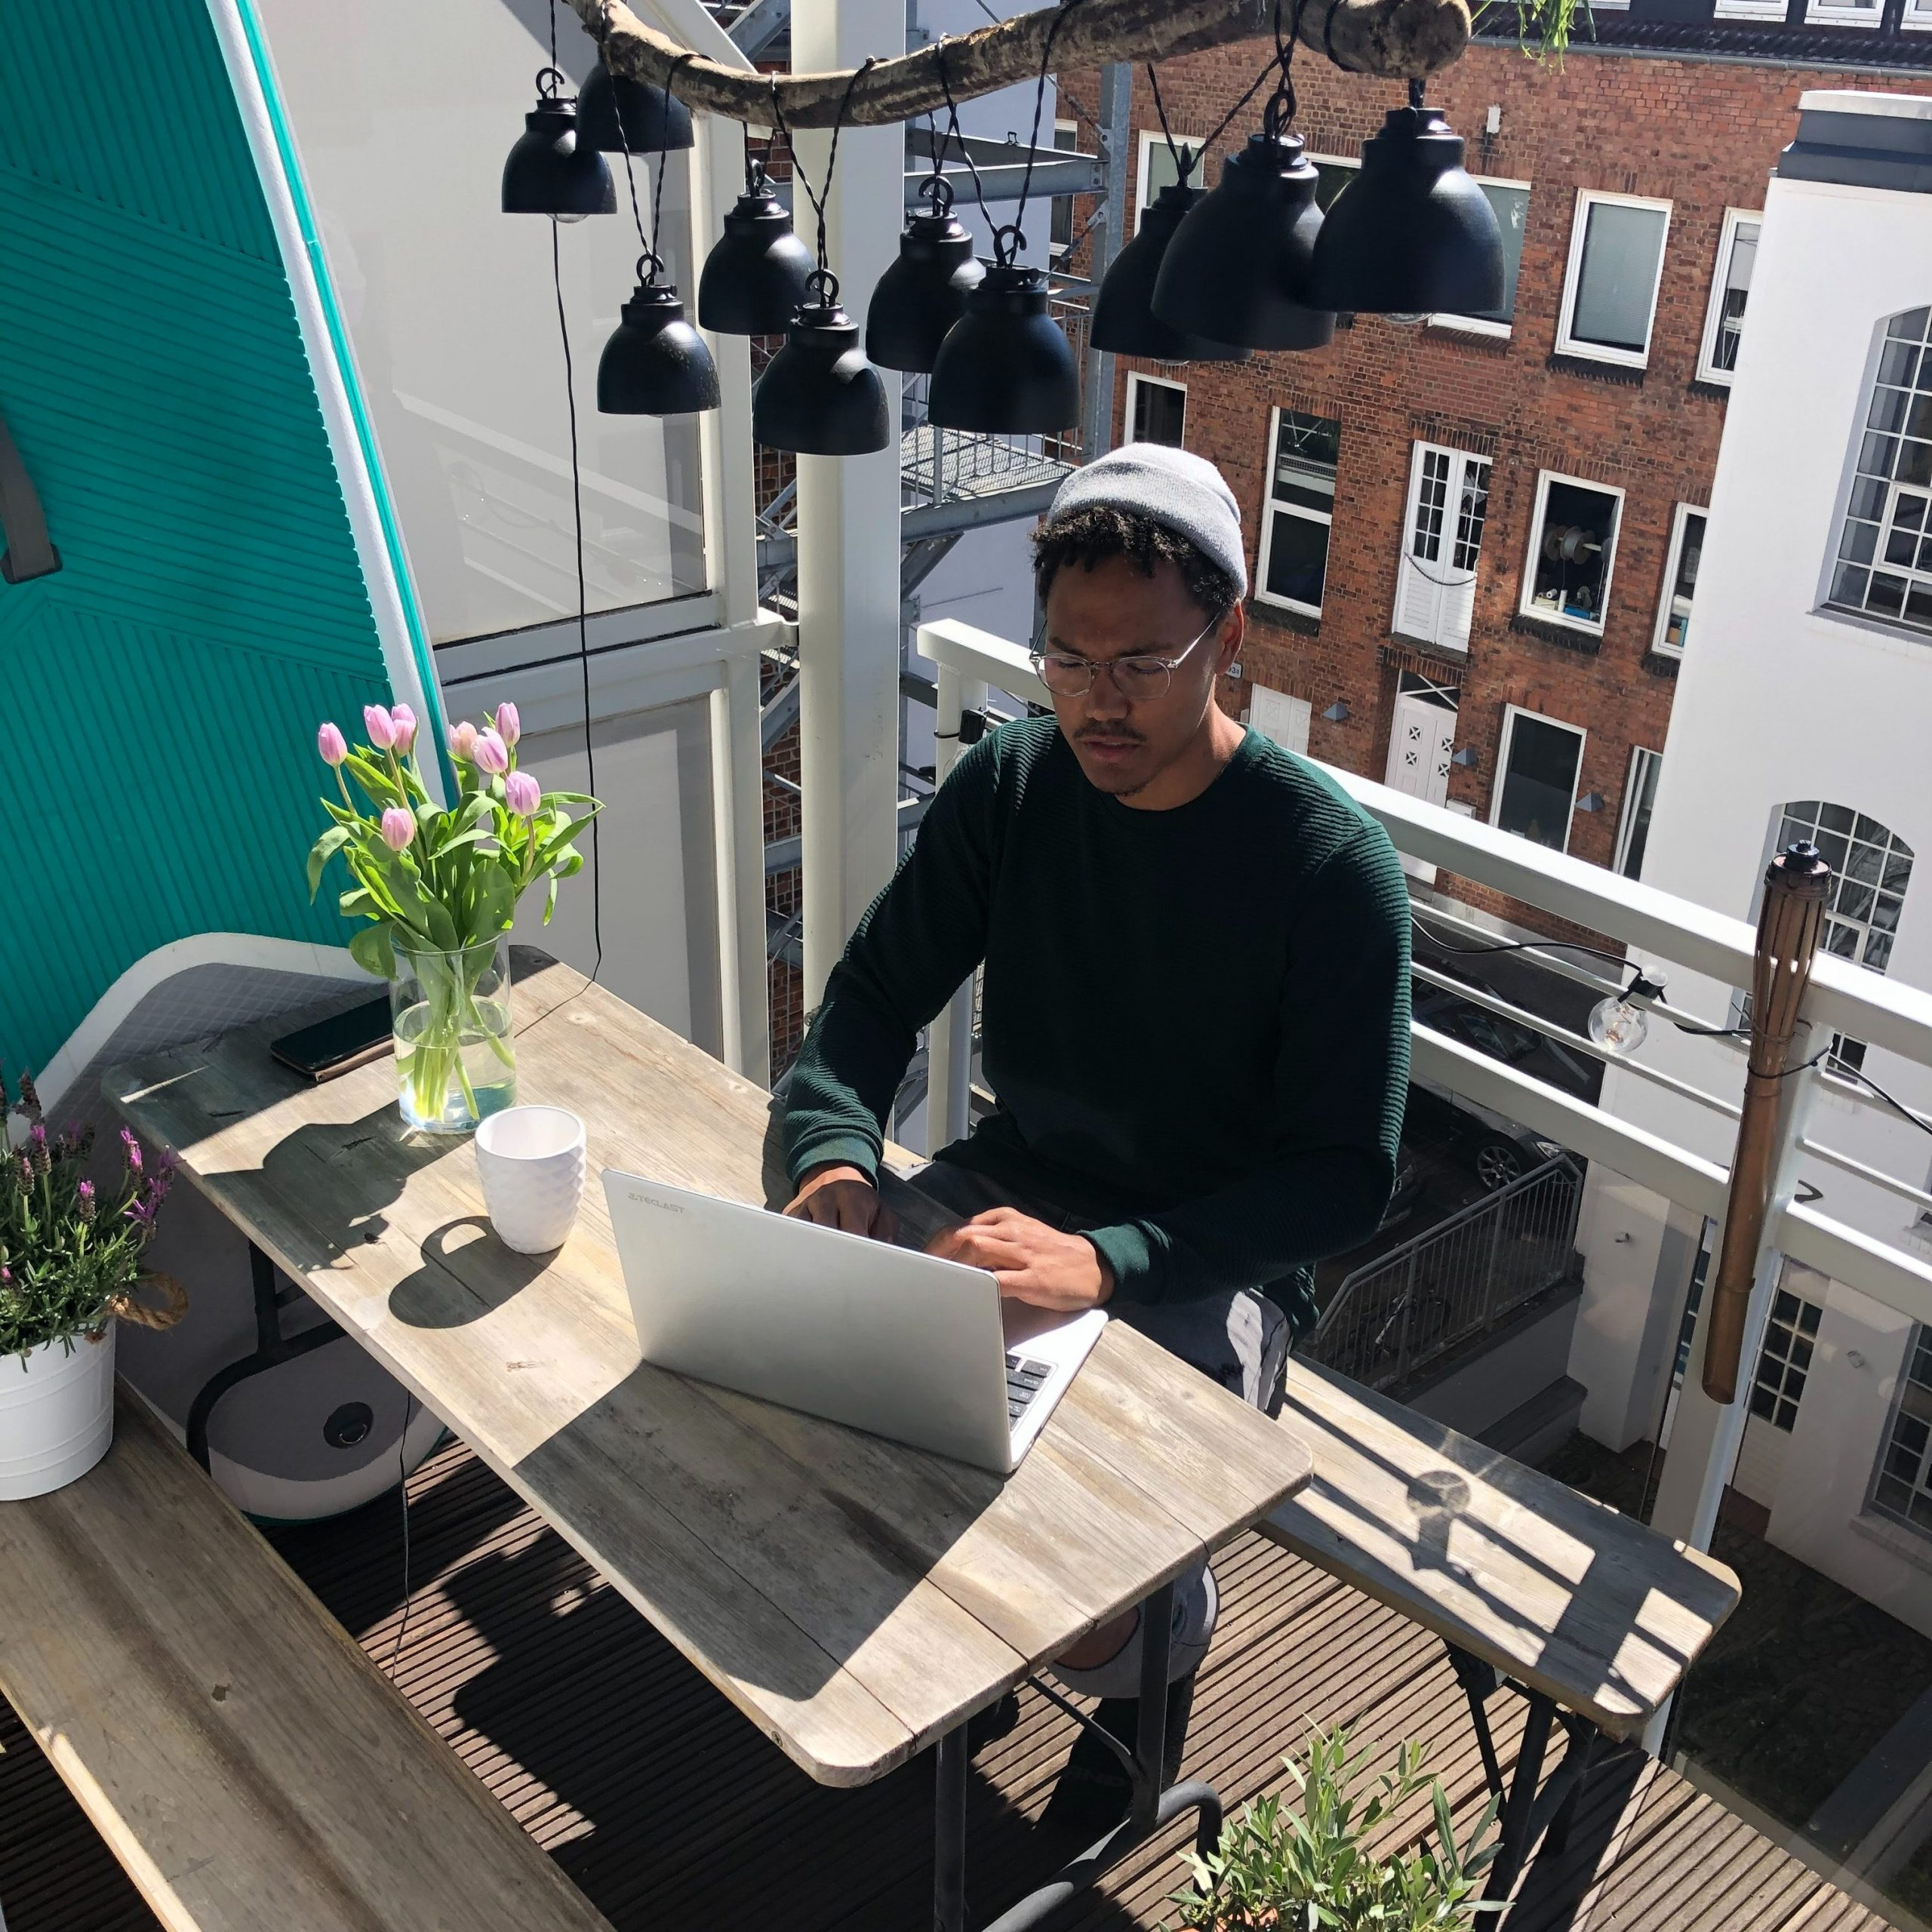 working remotely - circus - virtual reality